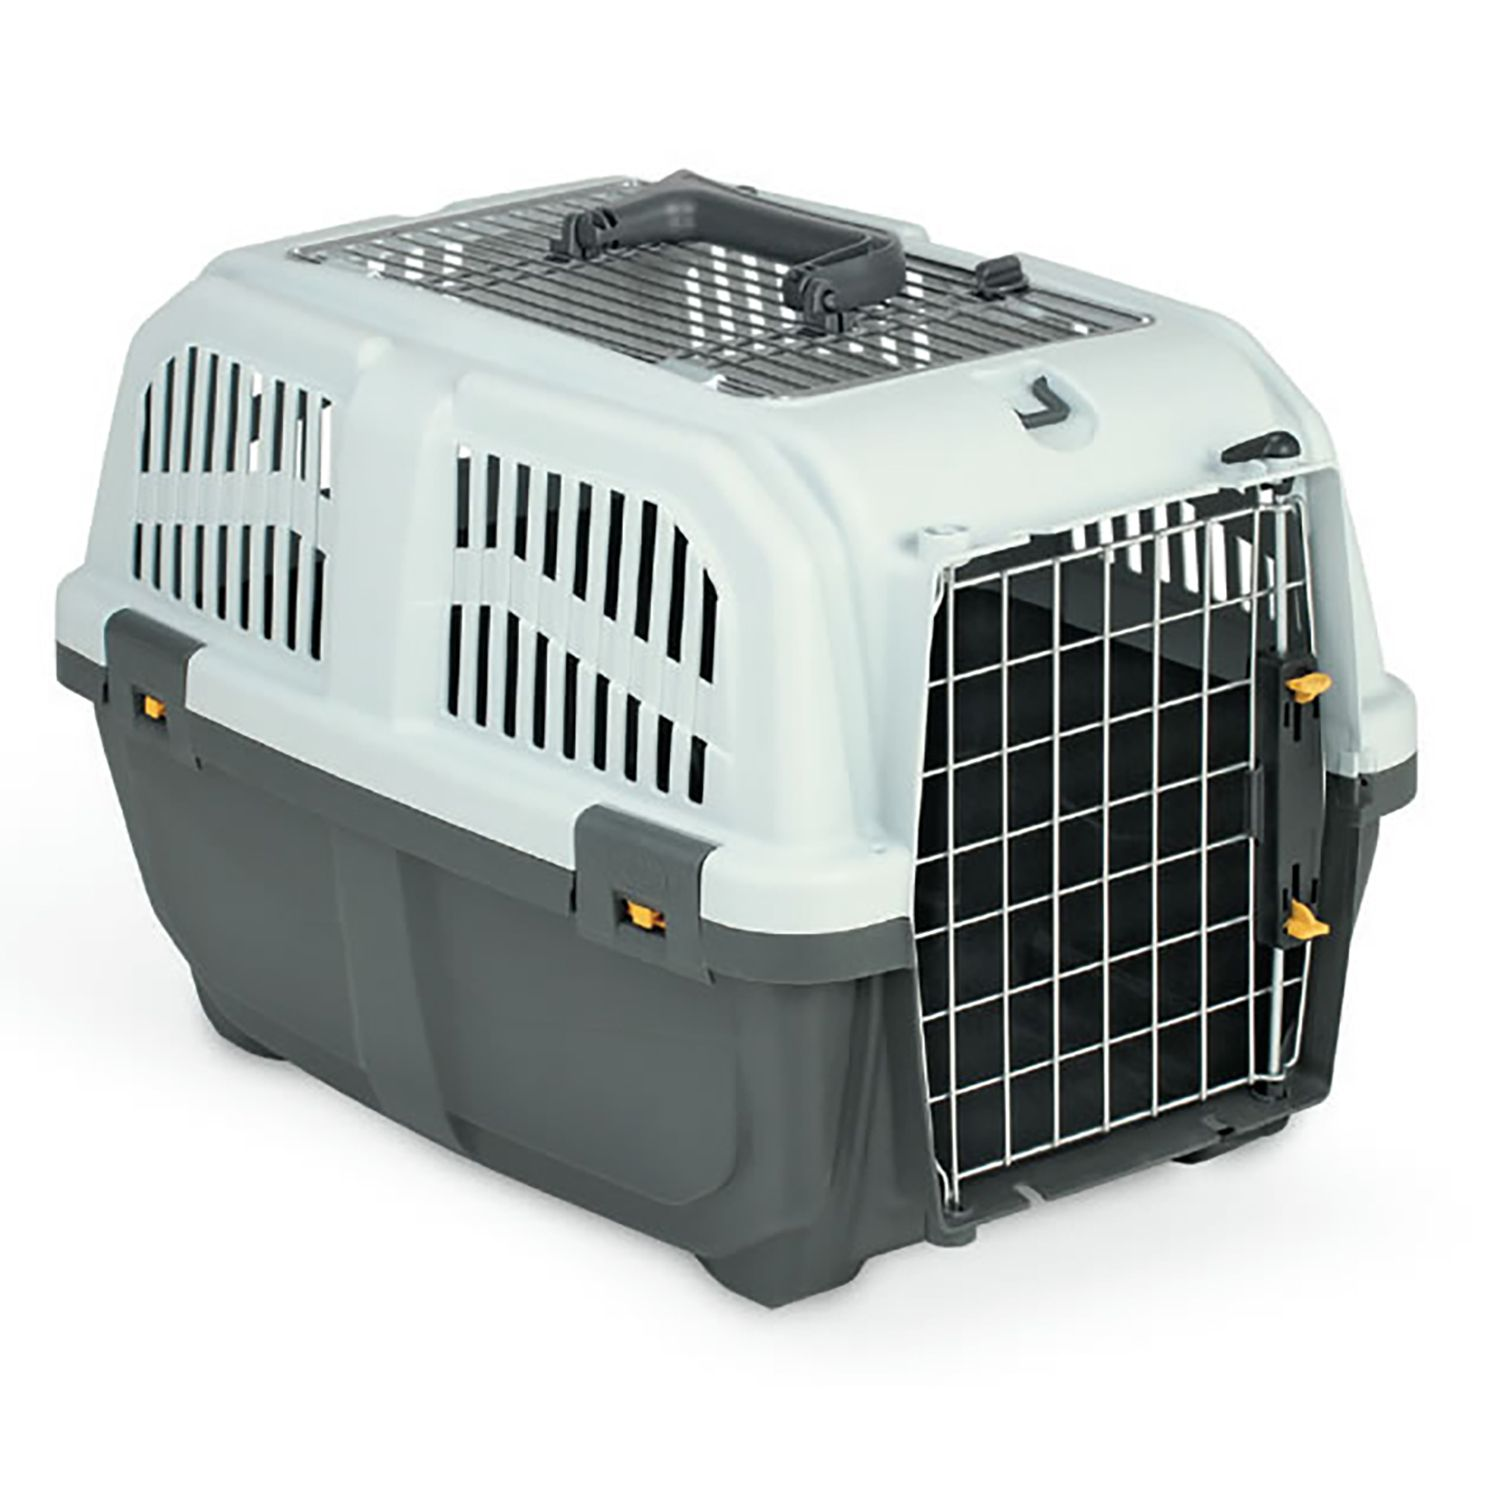 Lazy Bones Open Top Pet Carrier Stuff To Buy Pet Carriers Dog Carrier Designer Dog Carriers